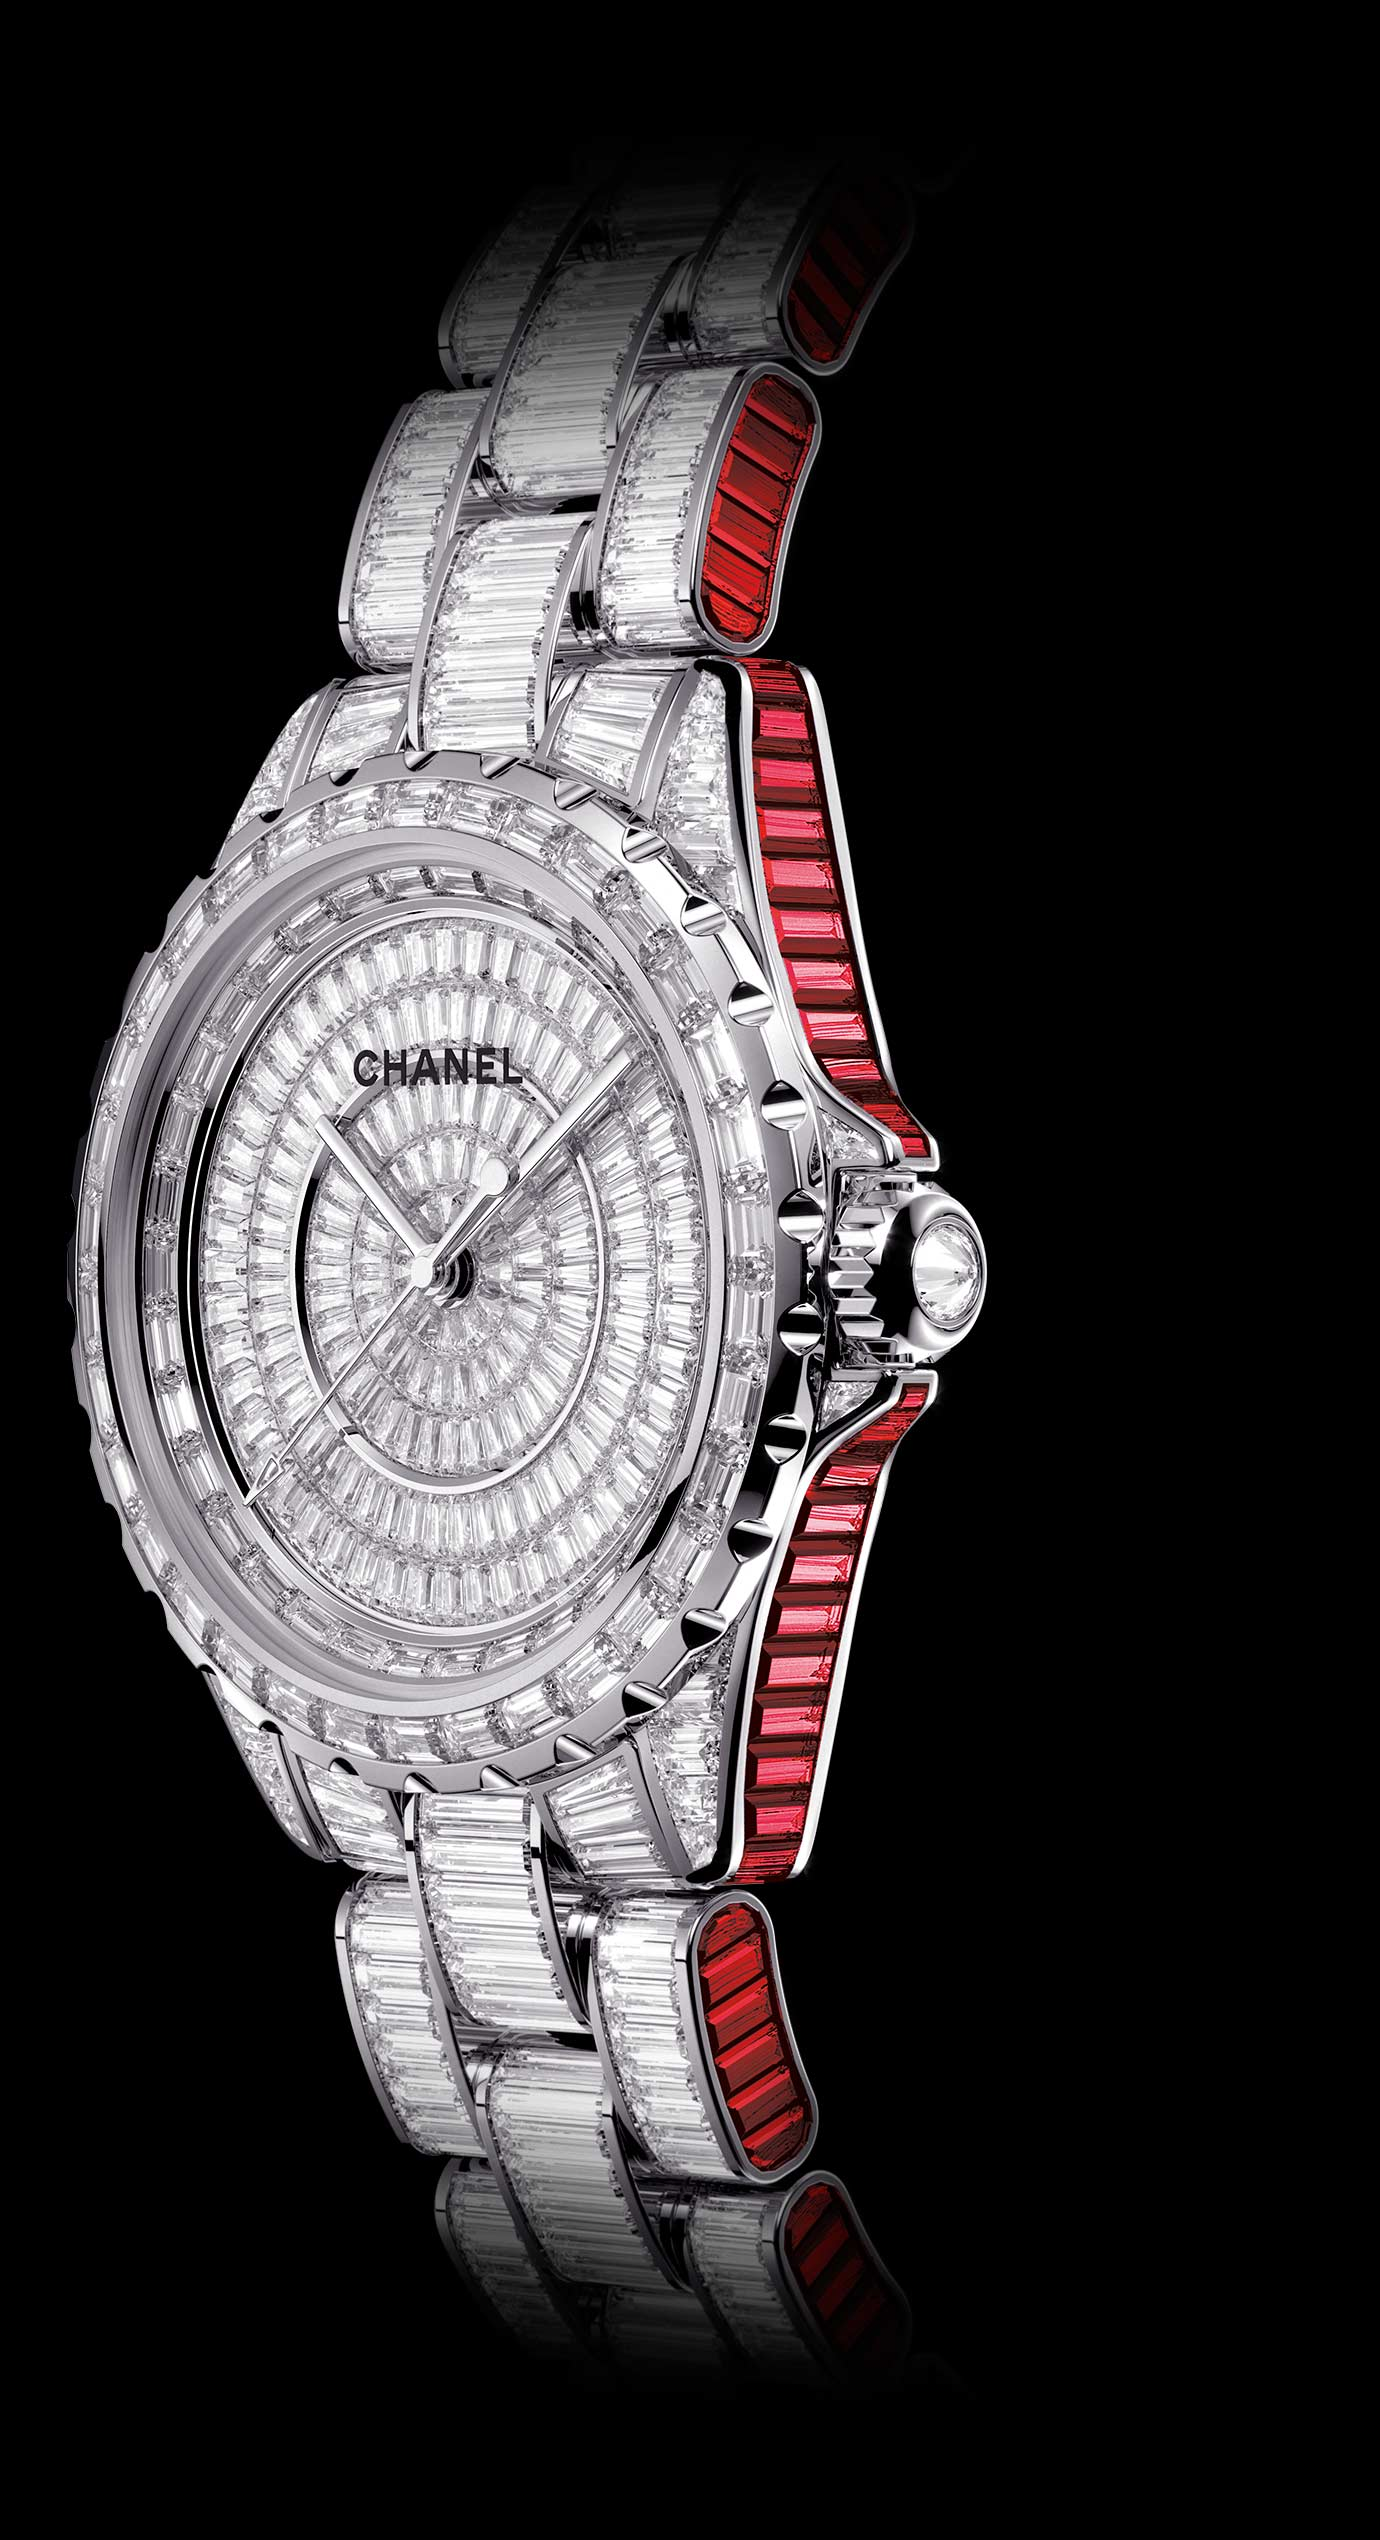 J12 Ganse Rubis watch in white gold, case, dial, bezel, and bracelet set with diamonds and baguette-cut rubies. - Enlarged view